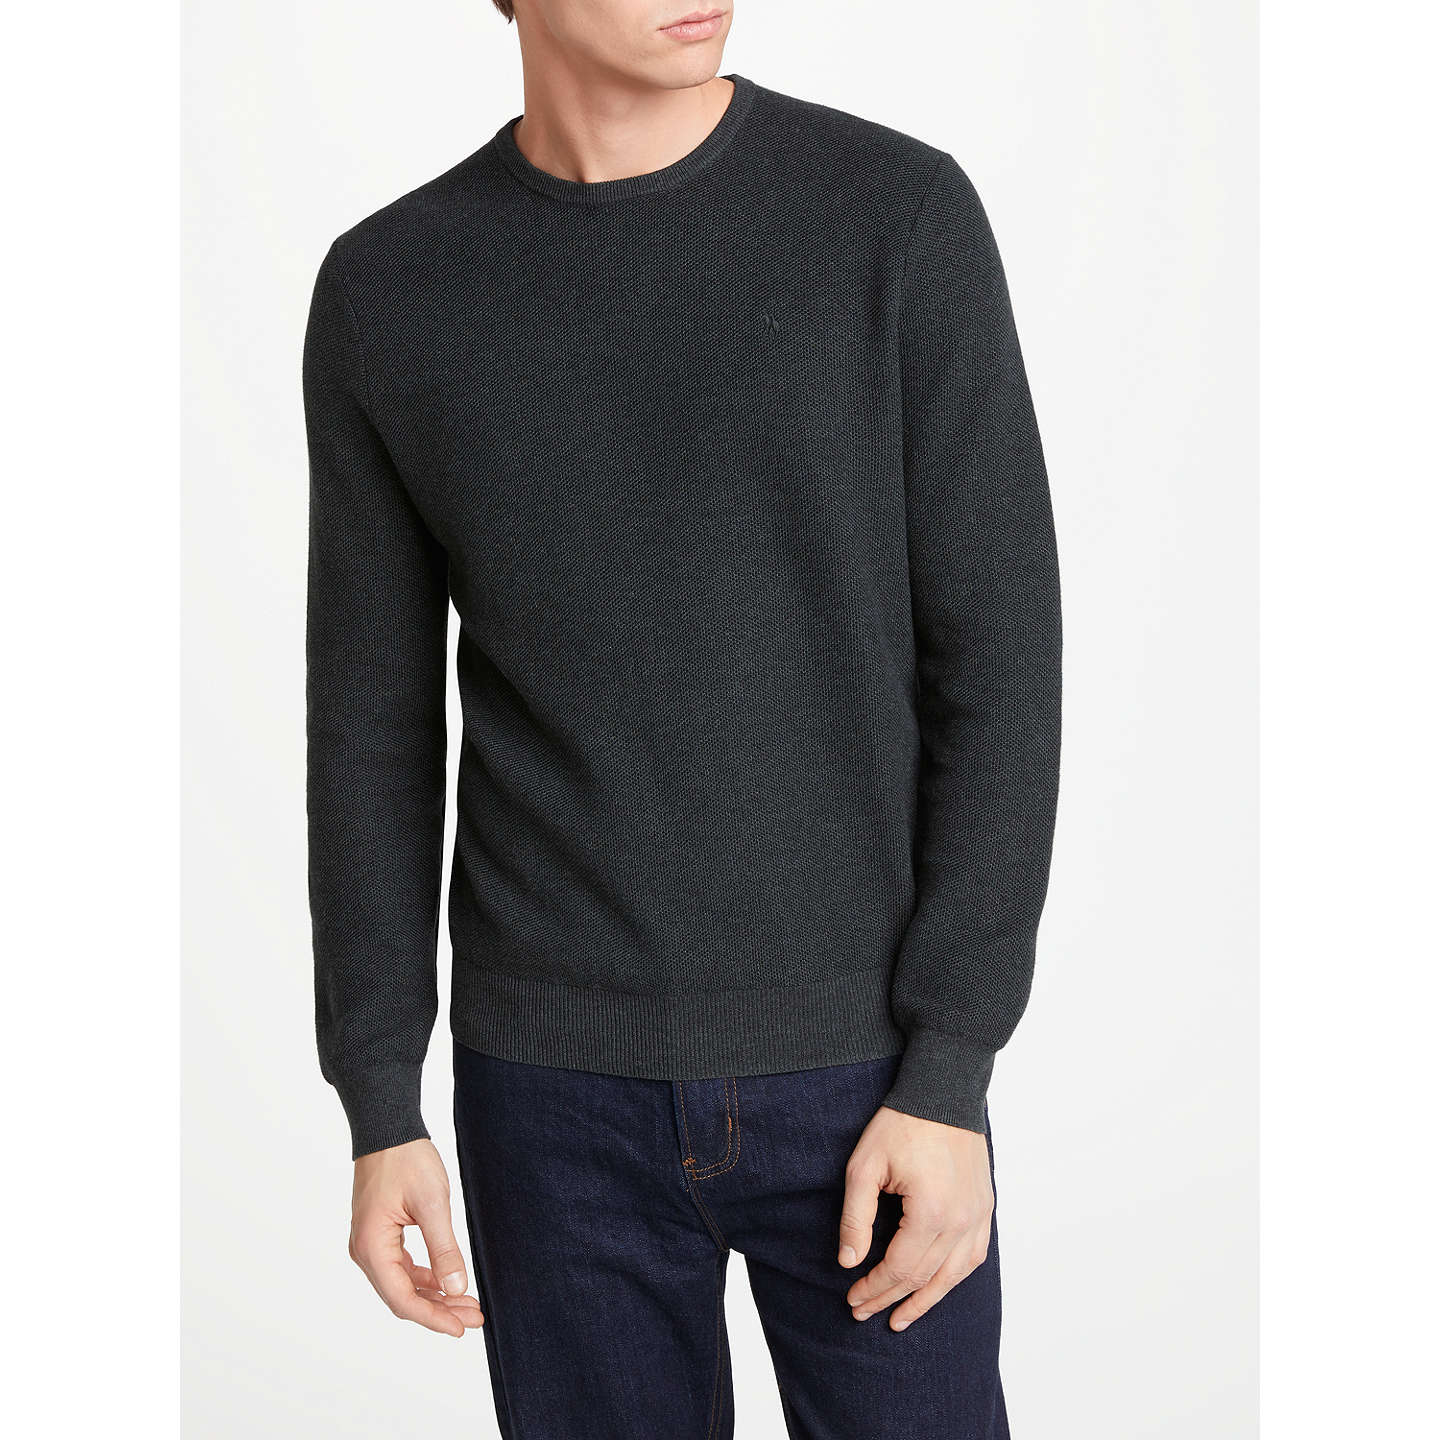 BuyPolo Ralph Lauren Long Sleeve Sweatshirt, Charcoal Grey Heather, S  Online at johnlewis.